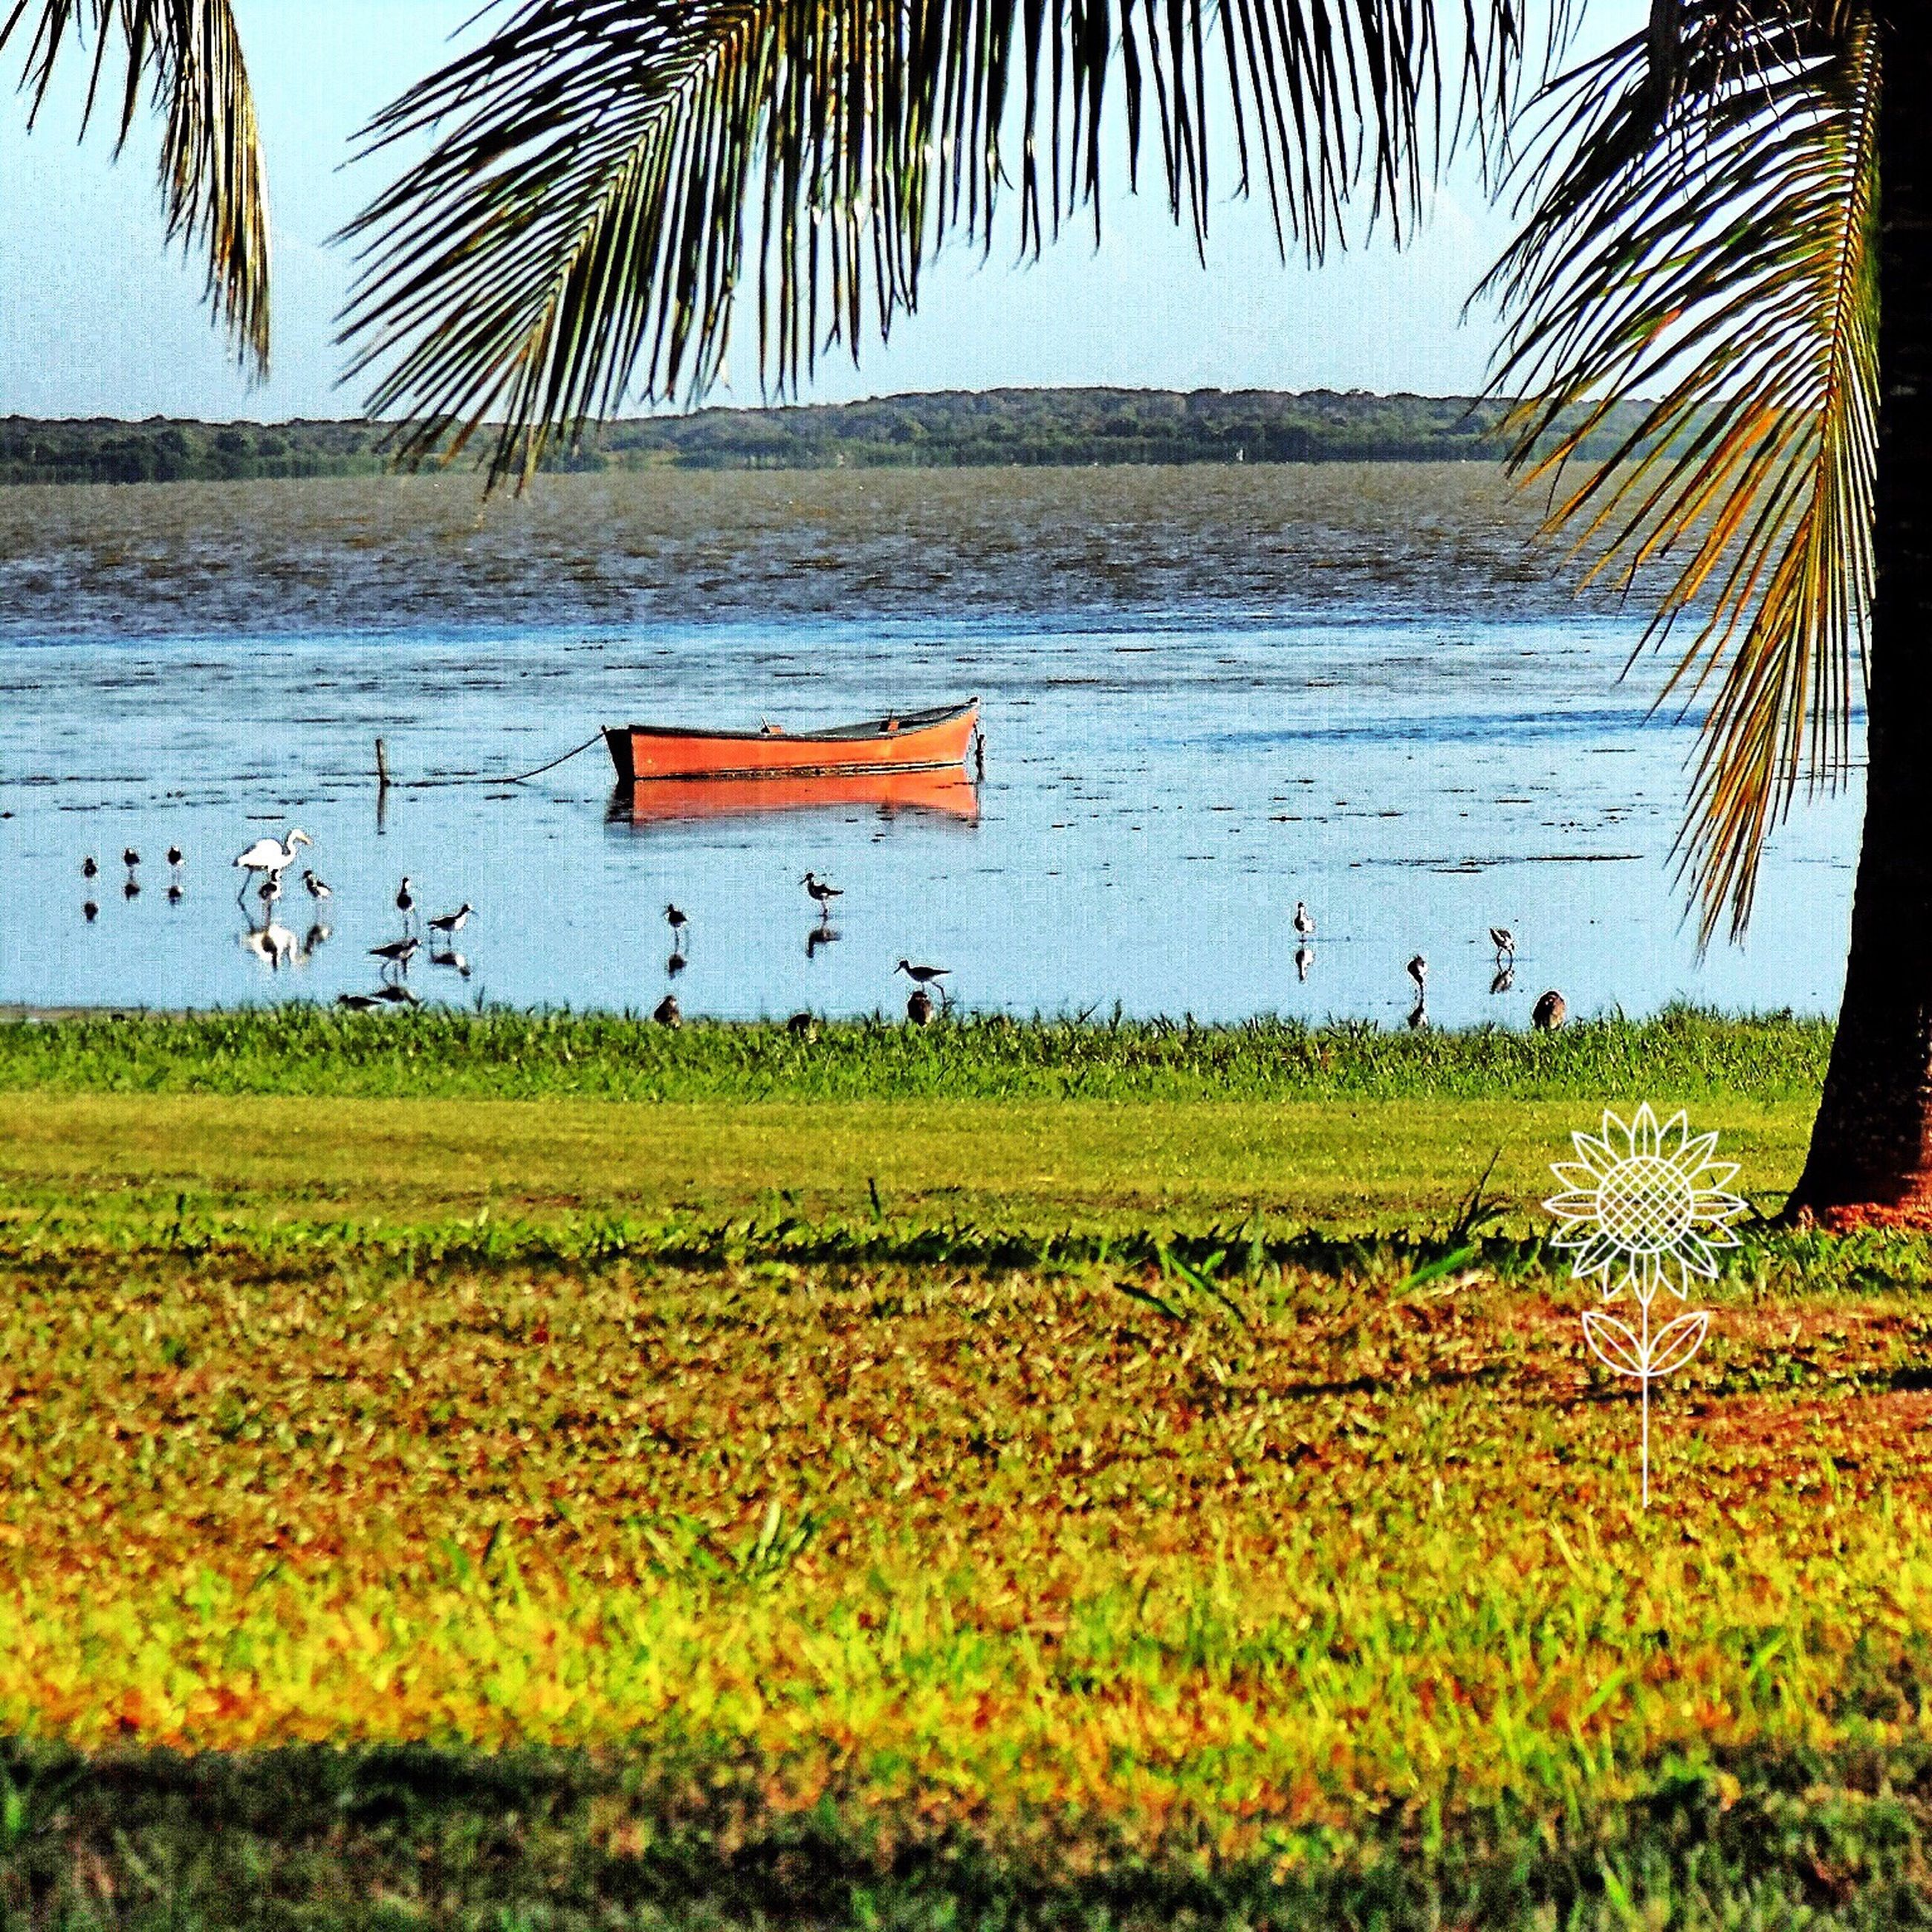 water, grass, tranquil scene, tranquility, lake, nature, beauty in nature, scenics, growth, plant, tree, flower, lakeshore, clear sky, field, sky, no people, idyllic, day, outdoors